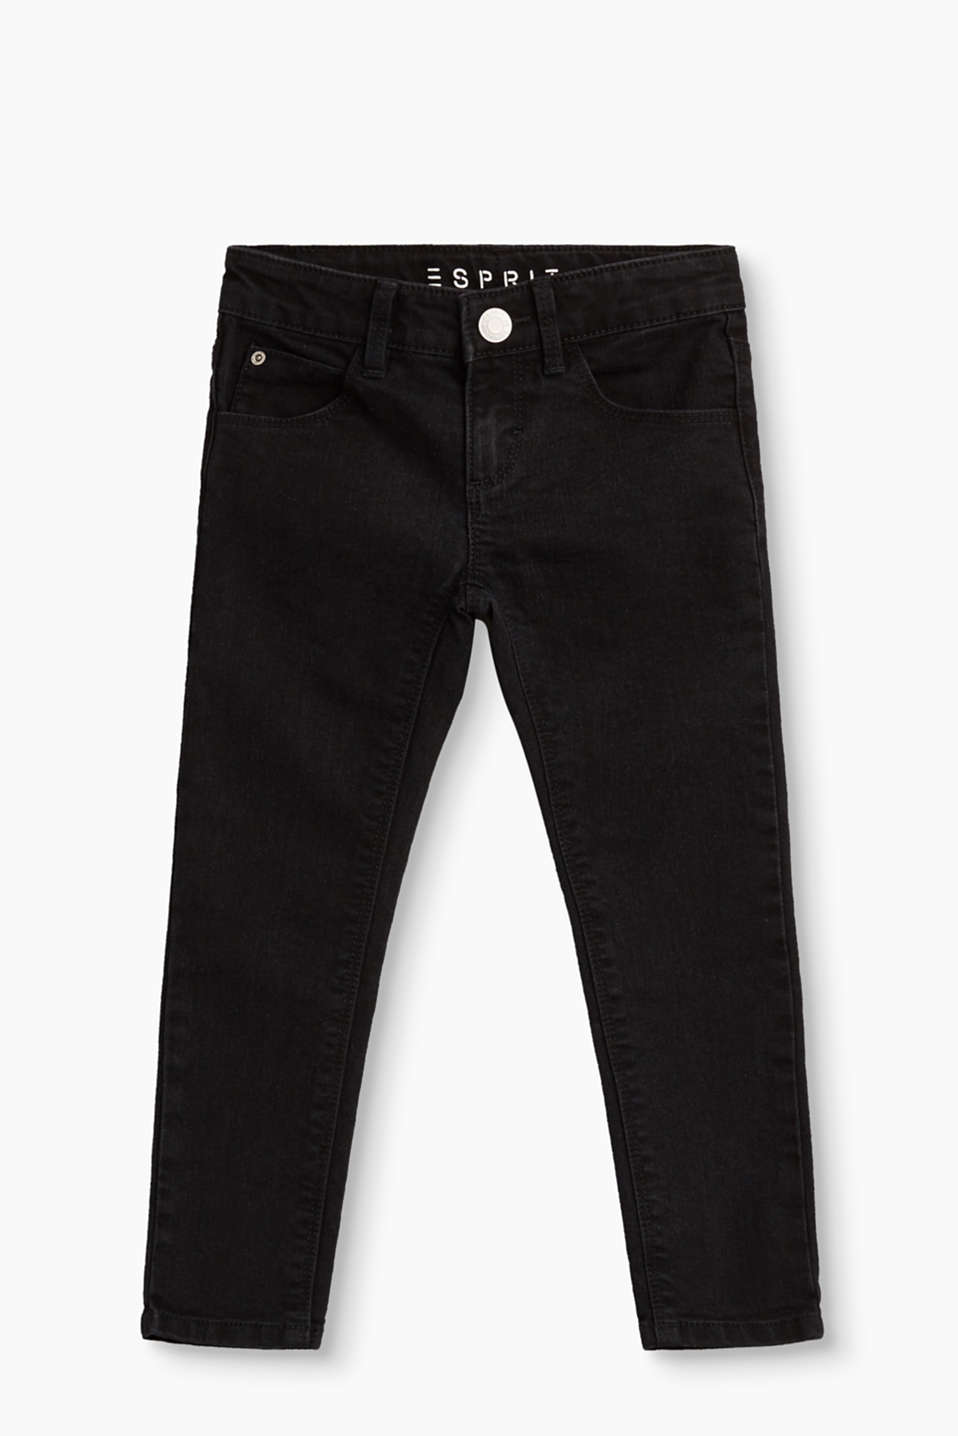 These basic black jeans are very versatile to mix and match. In a five-pocket design with a practical, adjustable waistband.